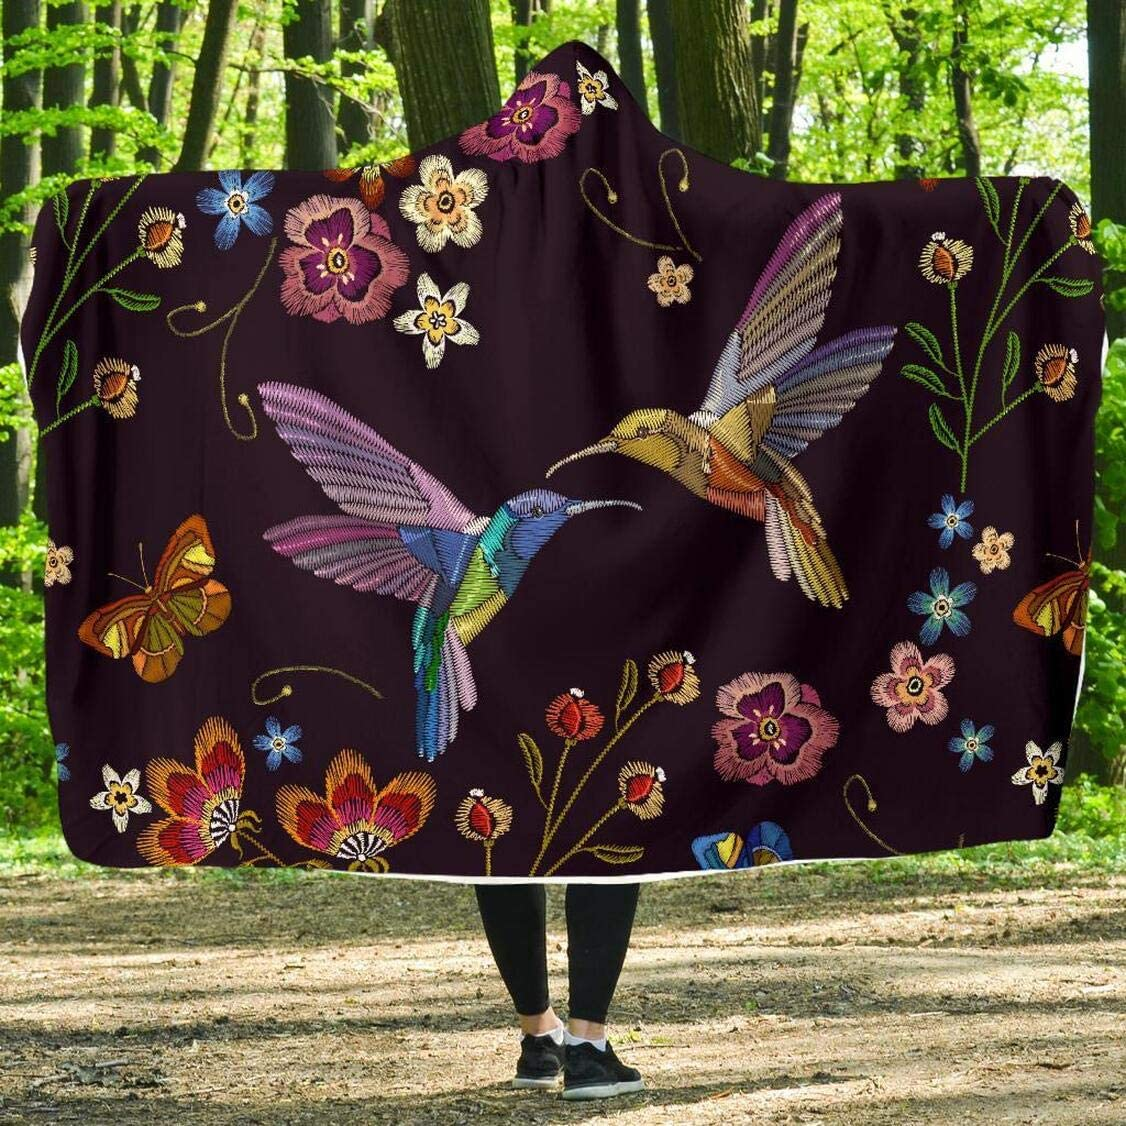 Personalized Bohemian Excellence Hummingbird Hooded - Blanket Wearable Blan Cheap sale